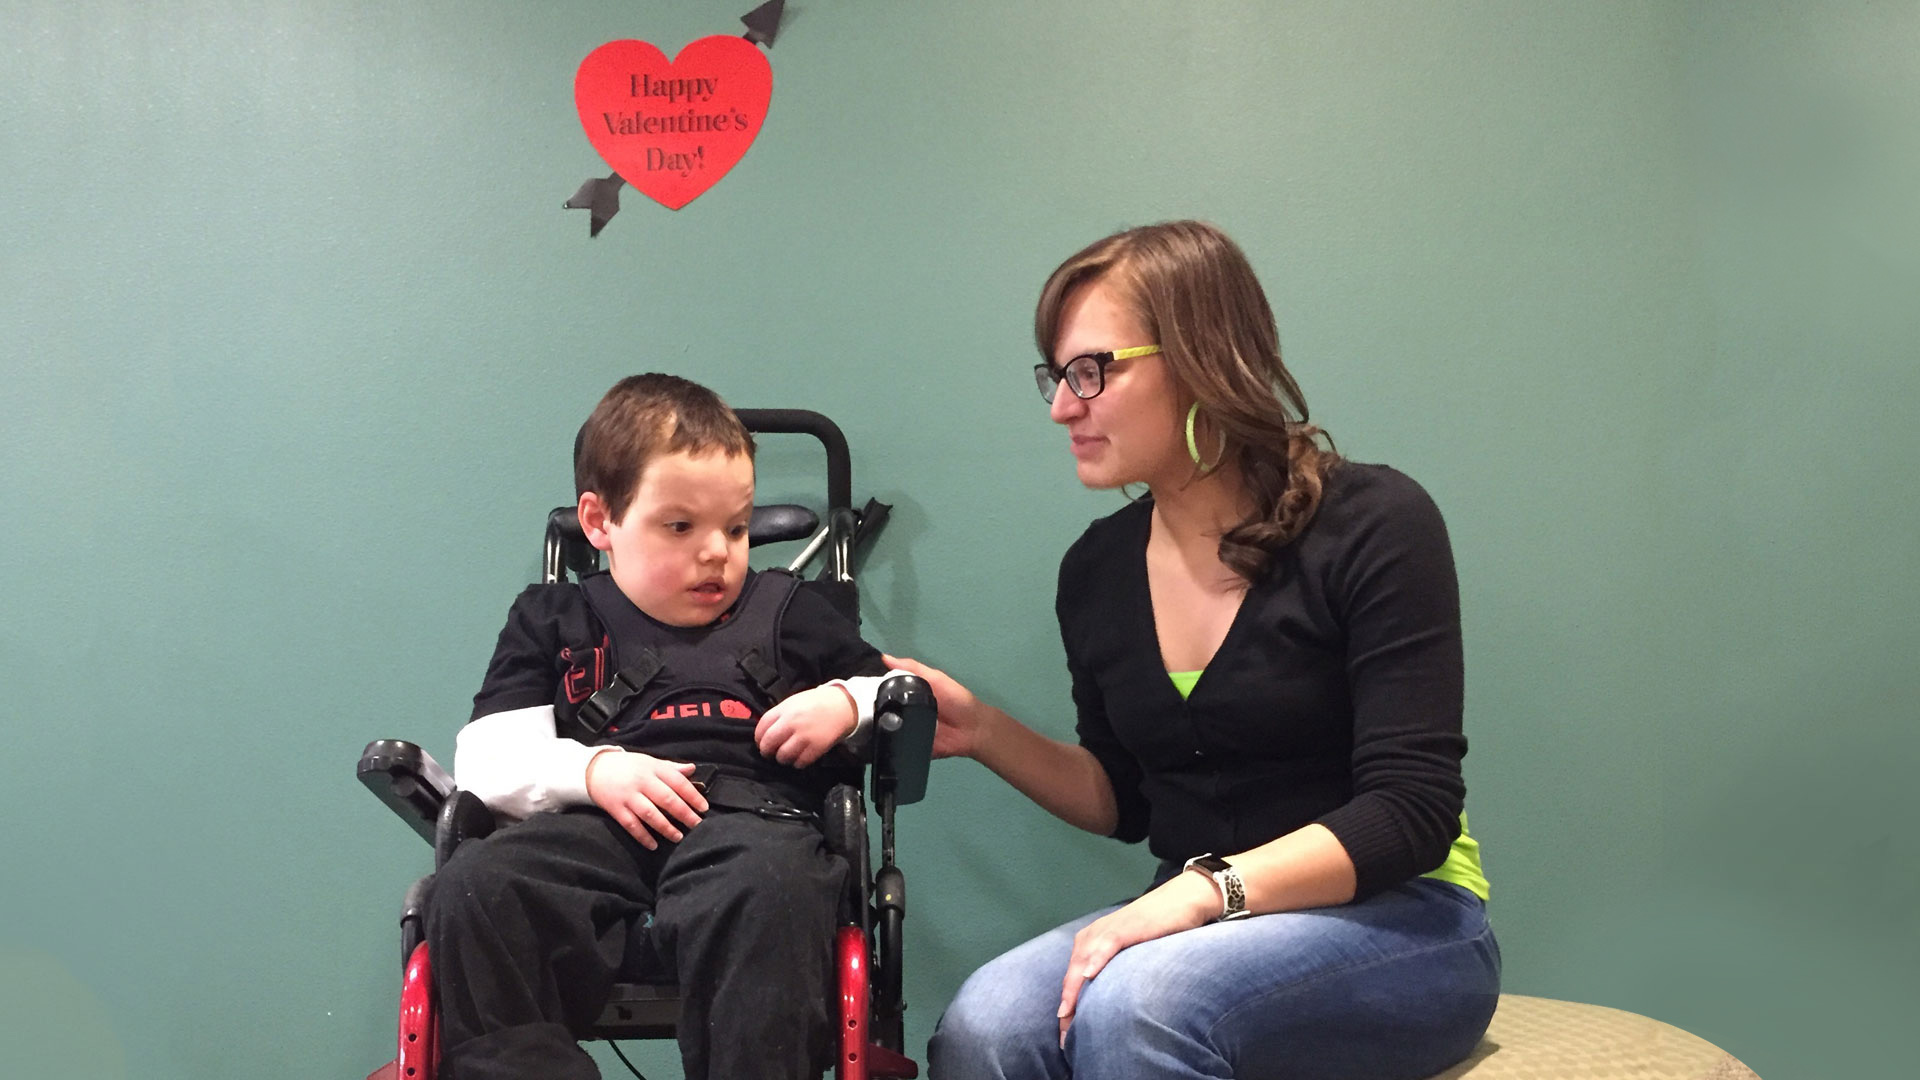 Jaclyn Larson and her son Aidan both have health insurance through Arizona's Medicaid program, AHCCCS.